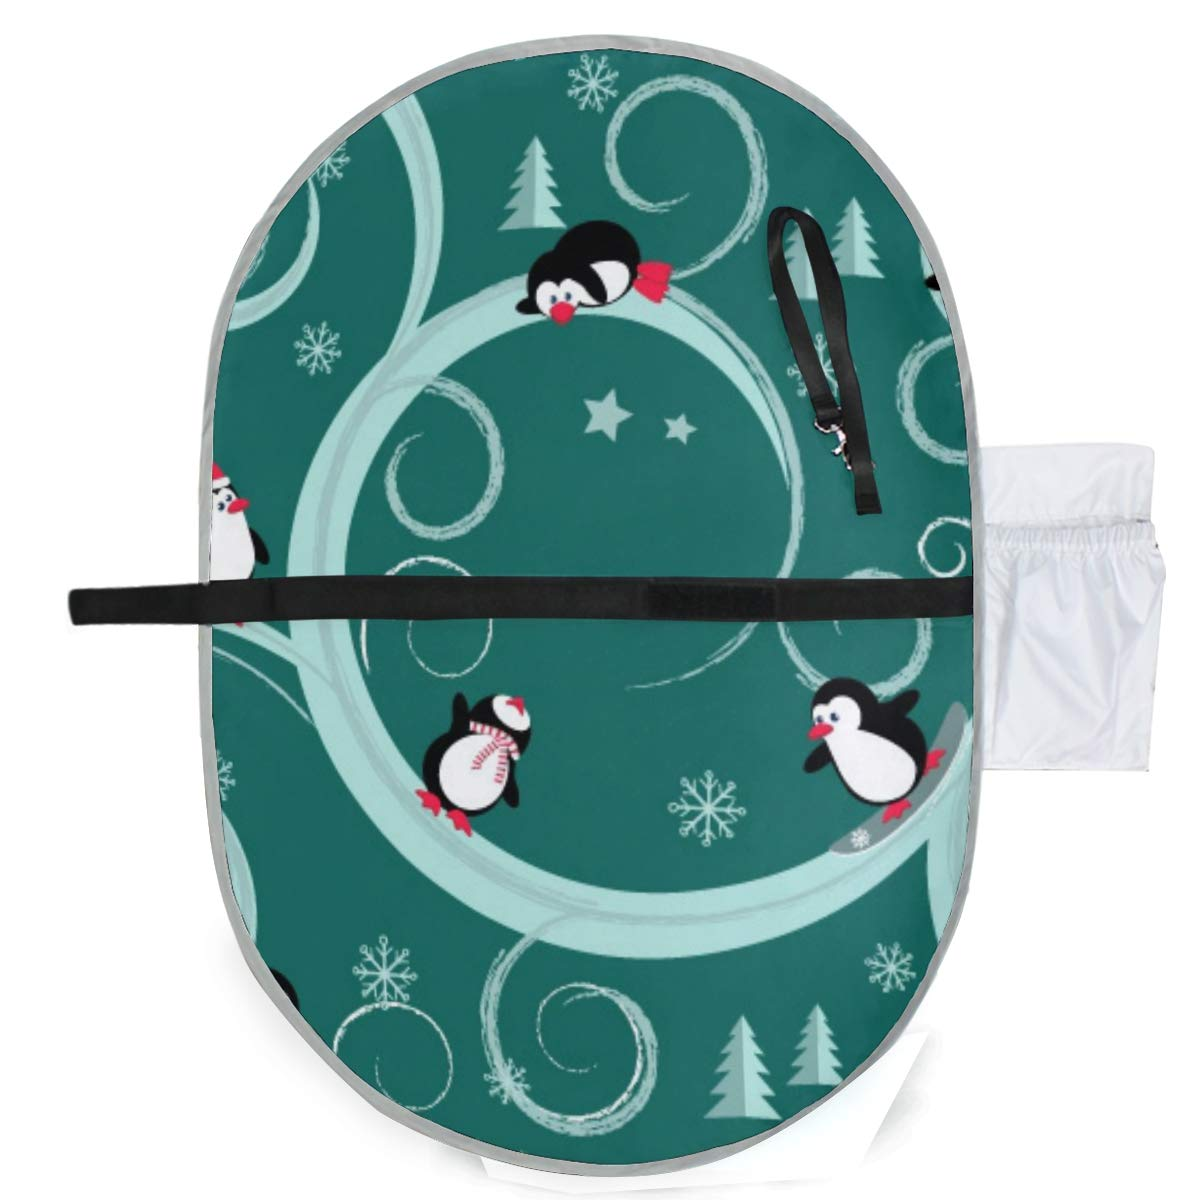 Waterproof Washable Baby Diaper Changing Pad Mat Penguins Portable and Foldable Infant Large Nappy Mat 27x20 inch